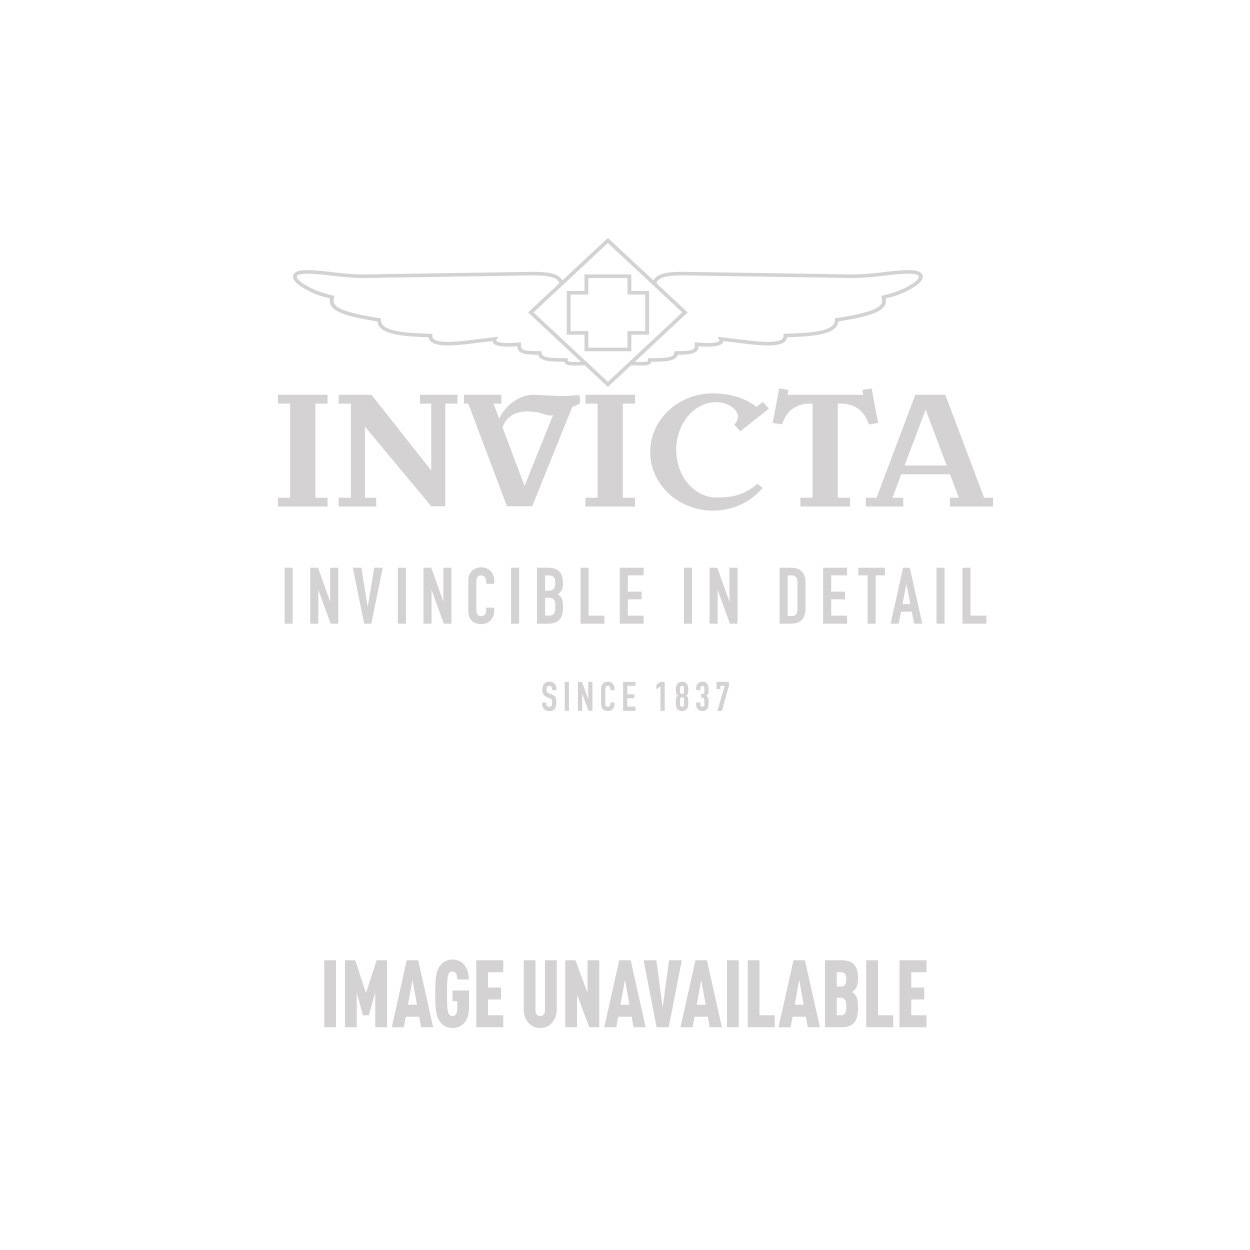 Invicta Lupah Swiss Movement Quartz Watch - Stainless Steel case with Black tone Leather band - Model 16054